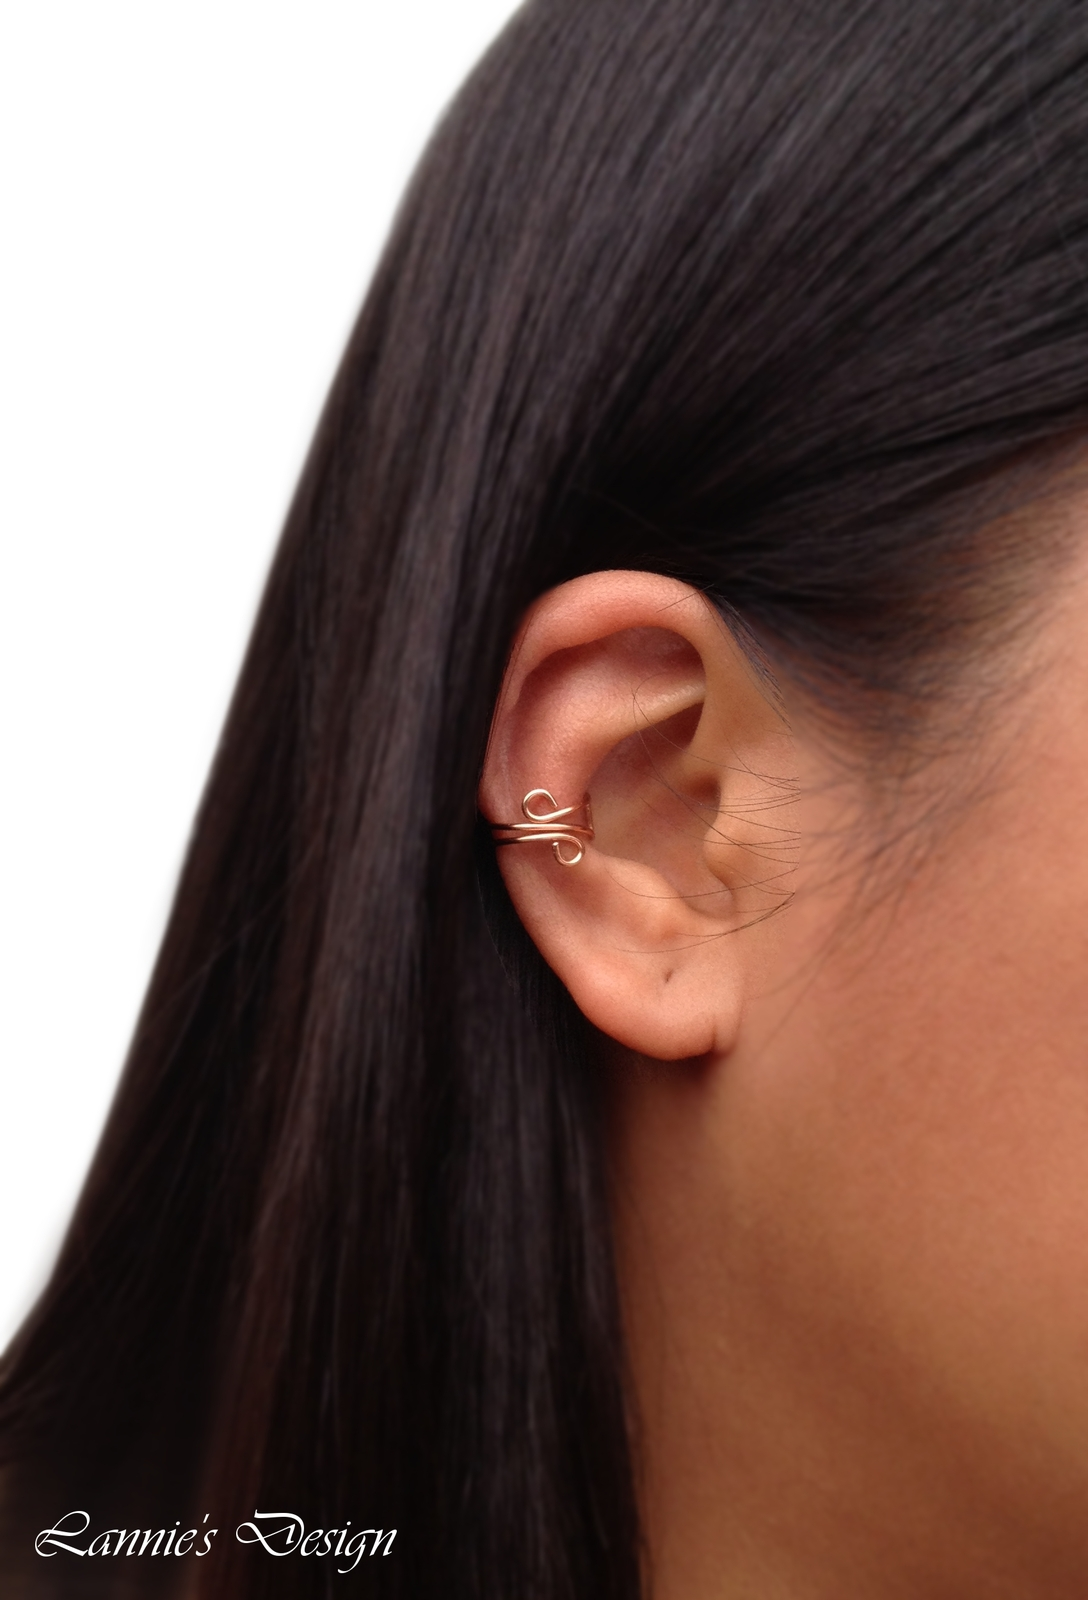 Copper Small Ear Cuff, No Piercing Cartilage Earrings